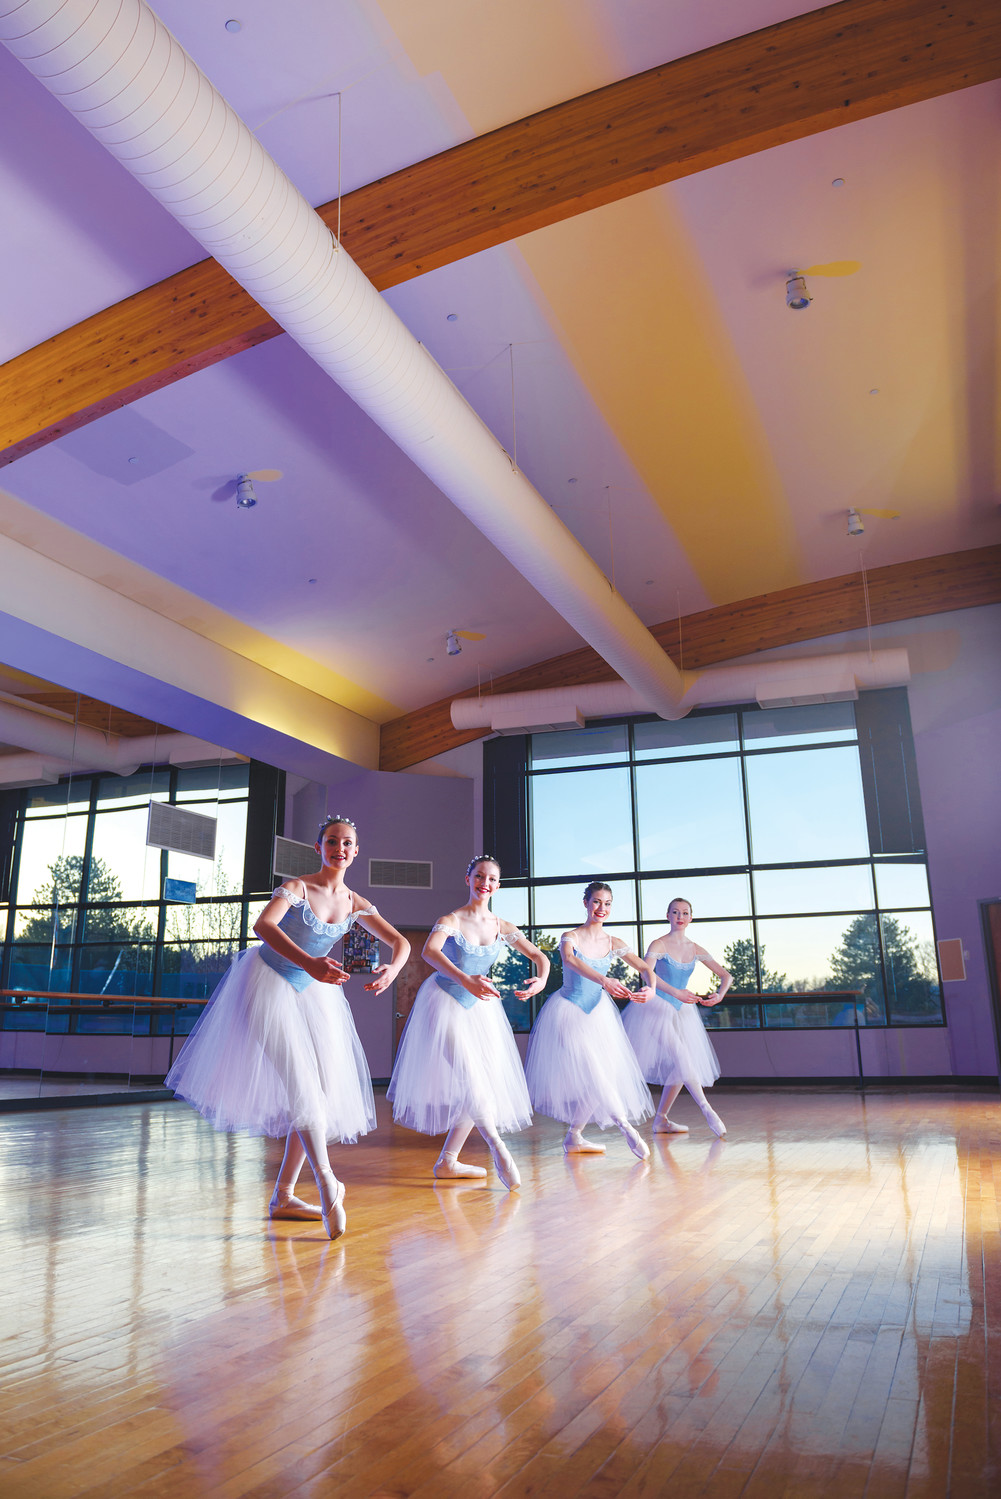 The Arvada Center for Arts and Humanities is teaming up with Regis University to offer students classes, including dance, starting in January.